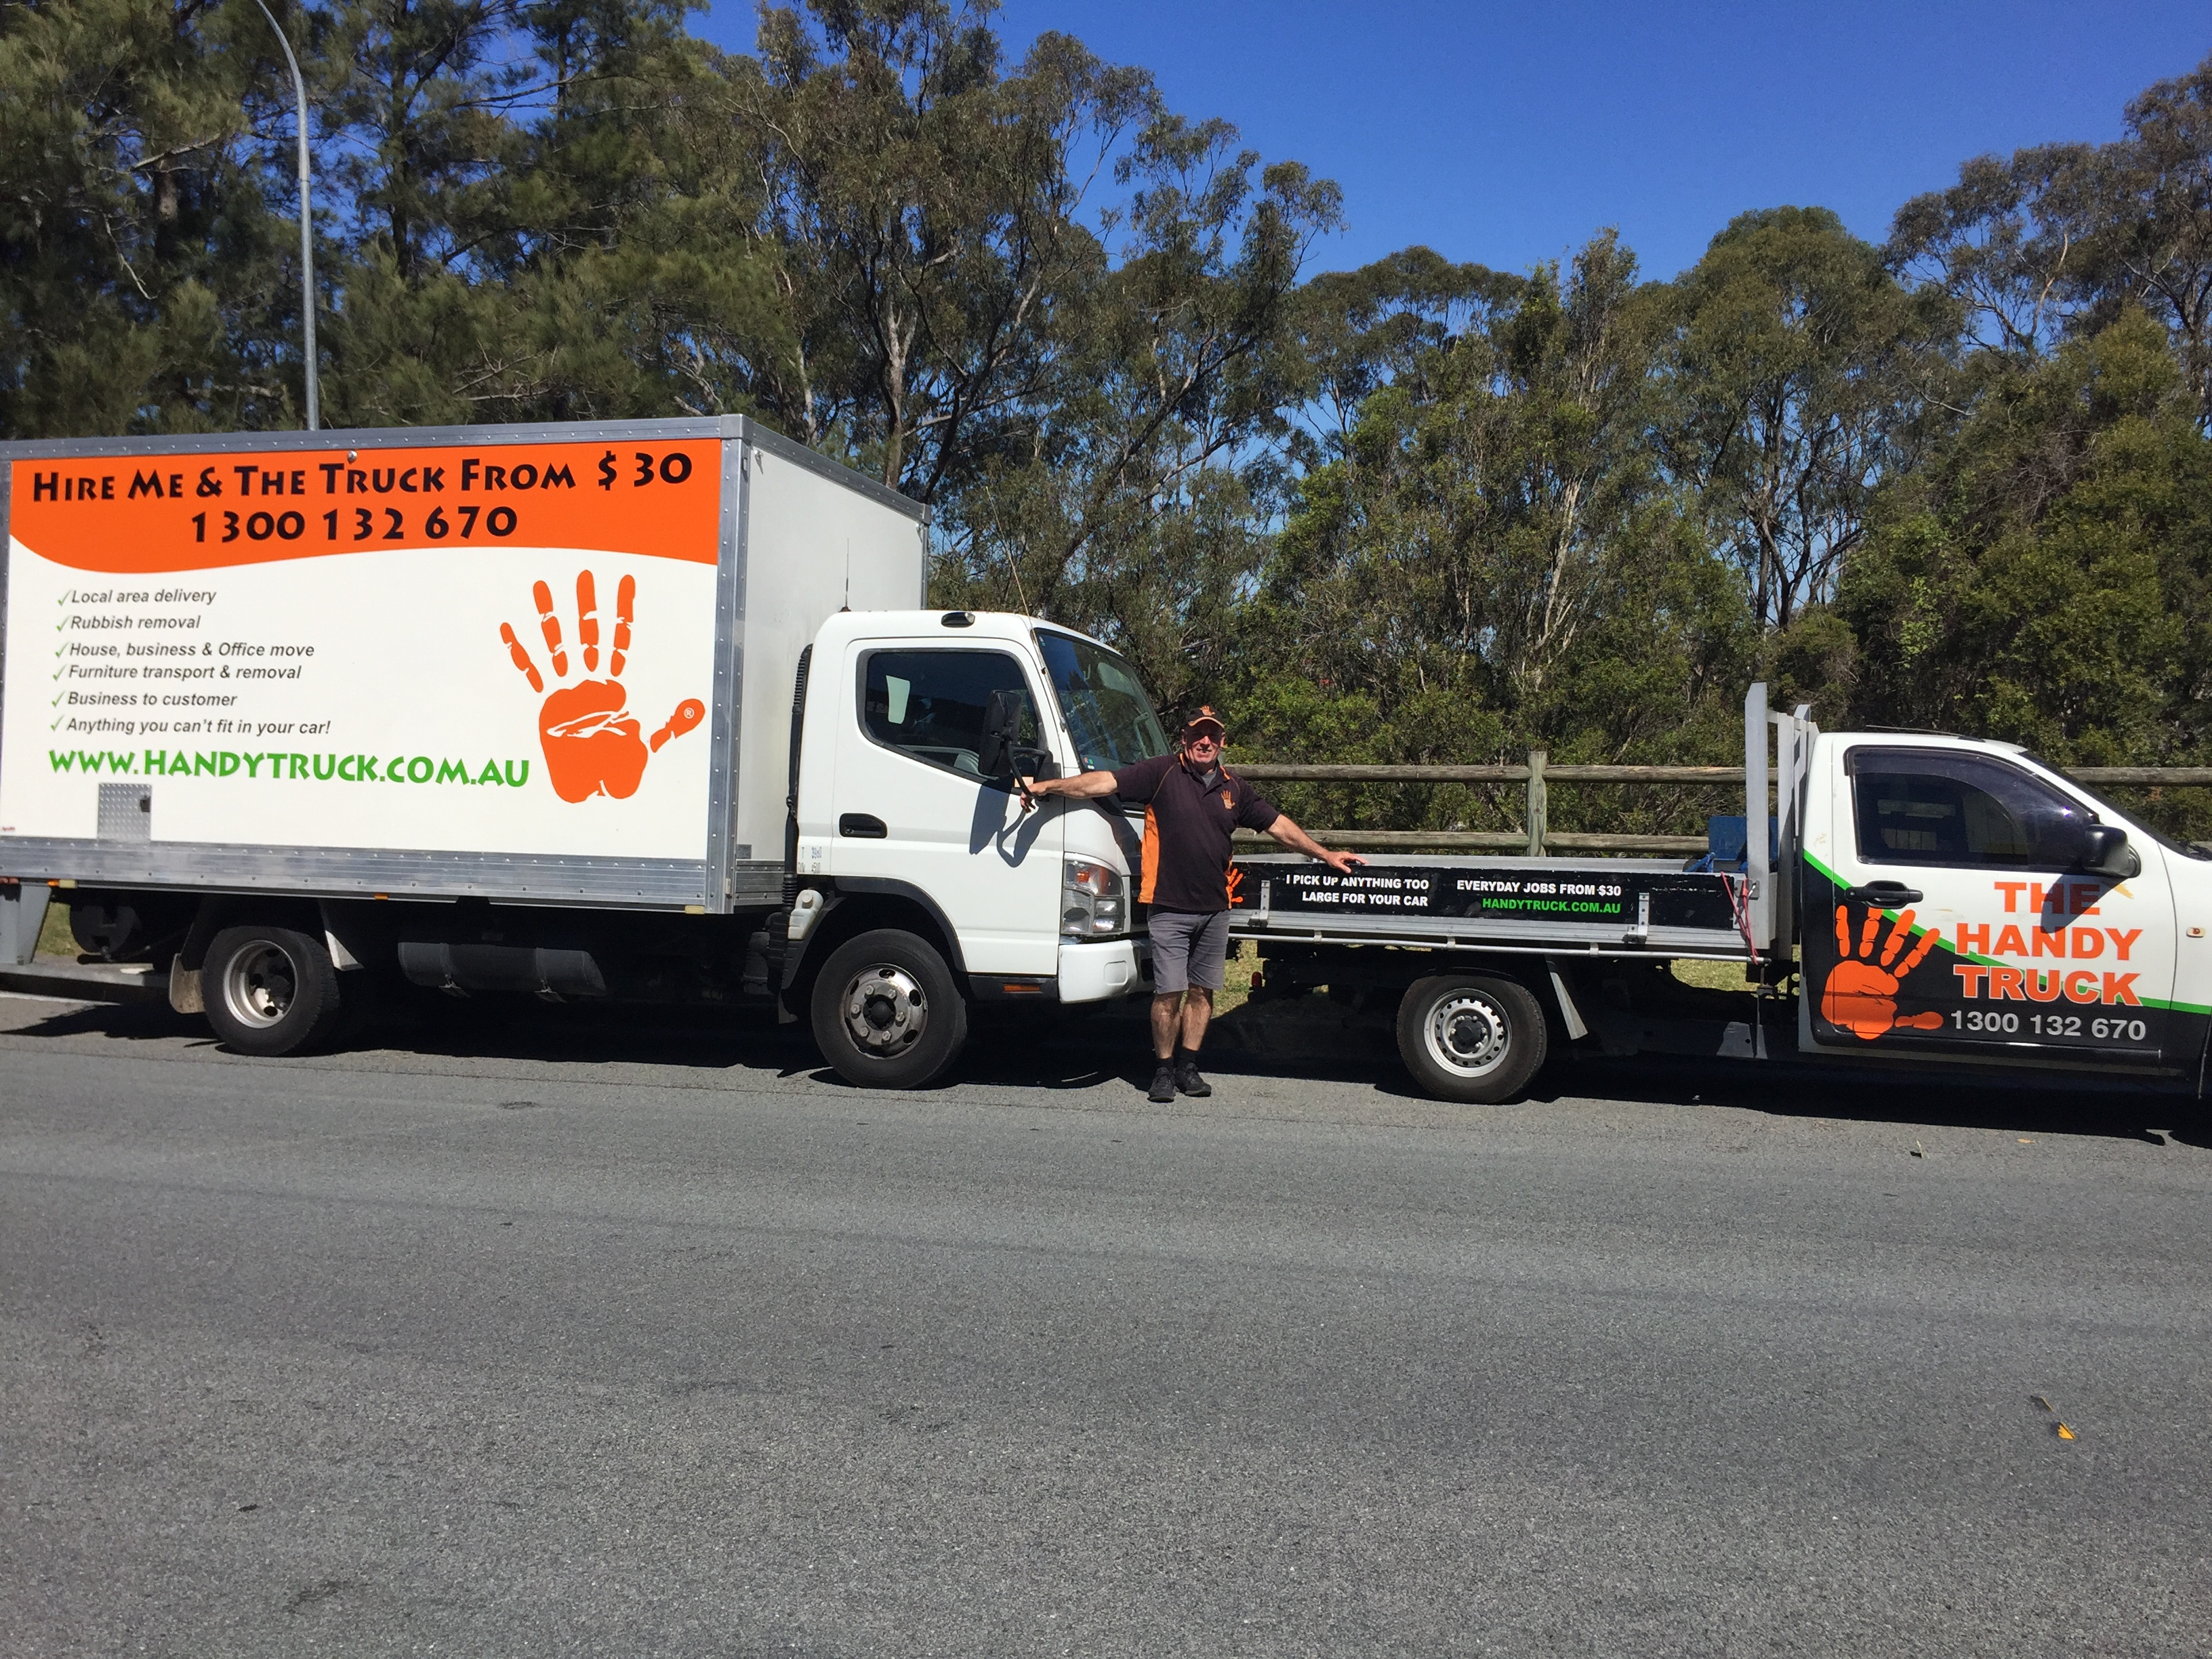 Your delivery and removalist service in Sunnybank